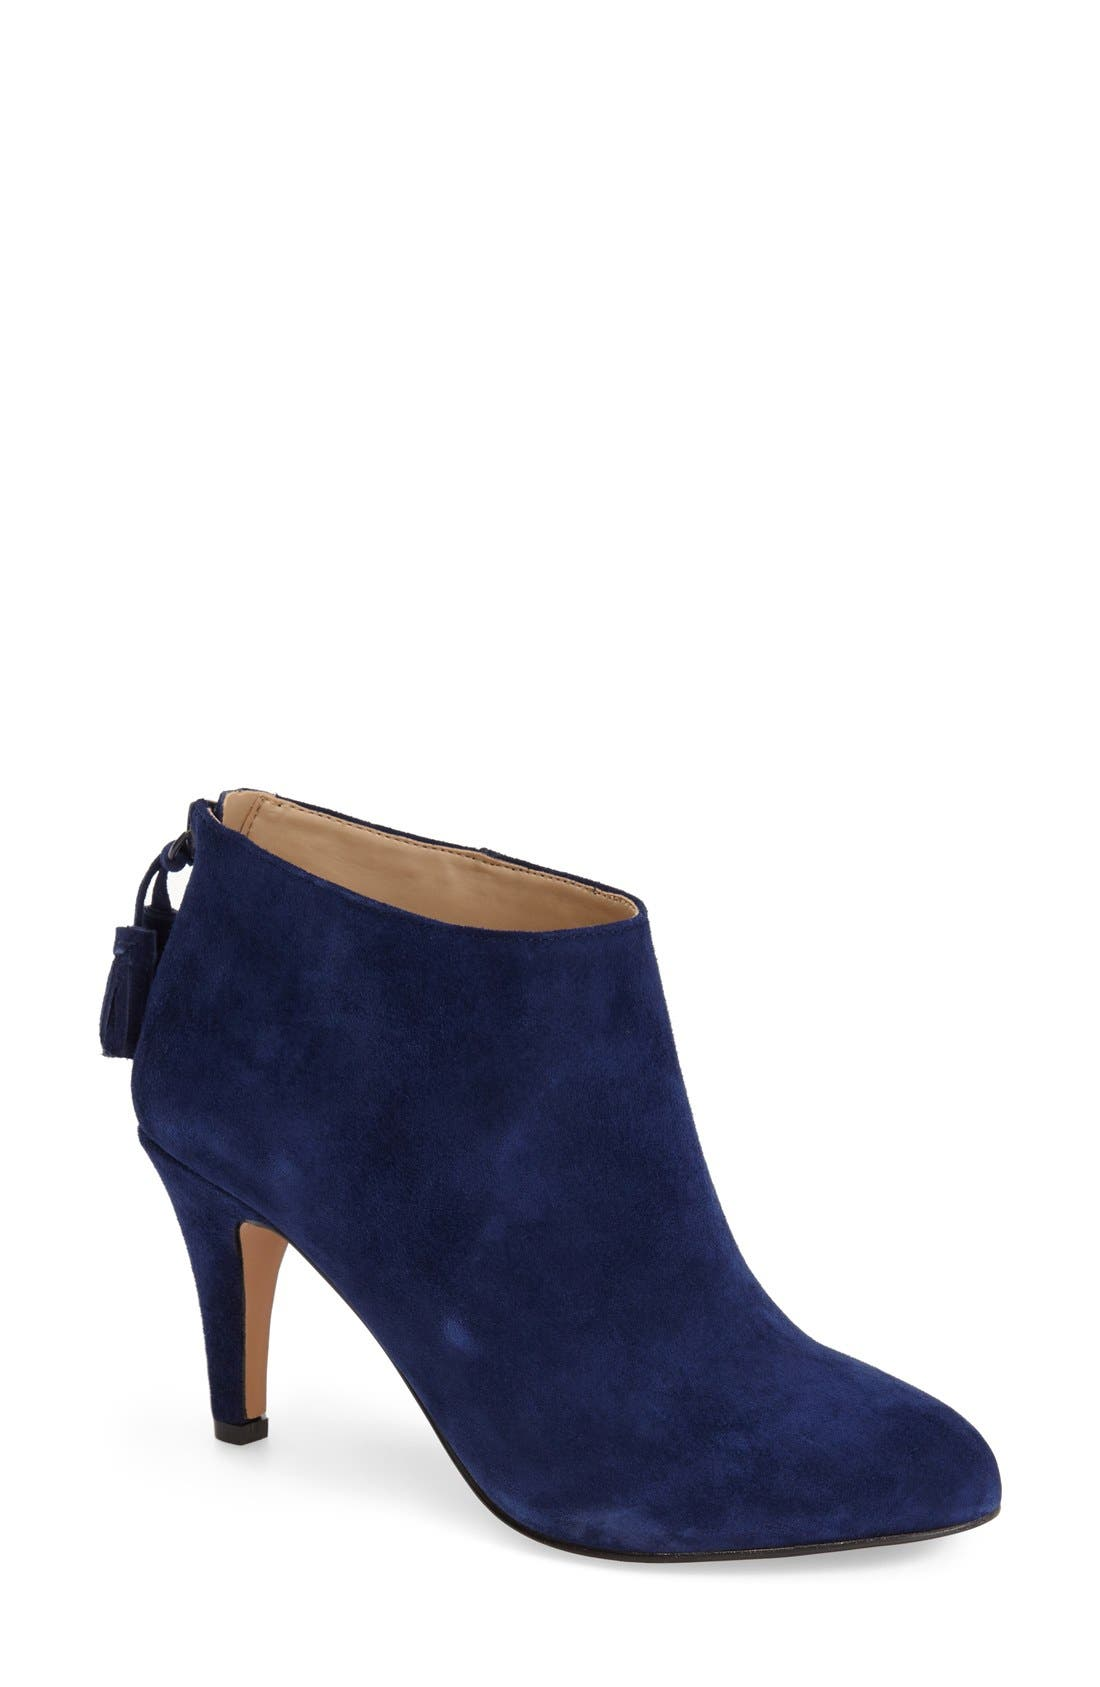 Main Image - Sole Society 'Aiden' Pointy Toe Bootie(Women)